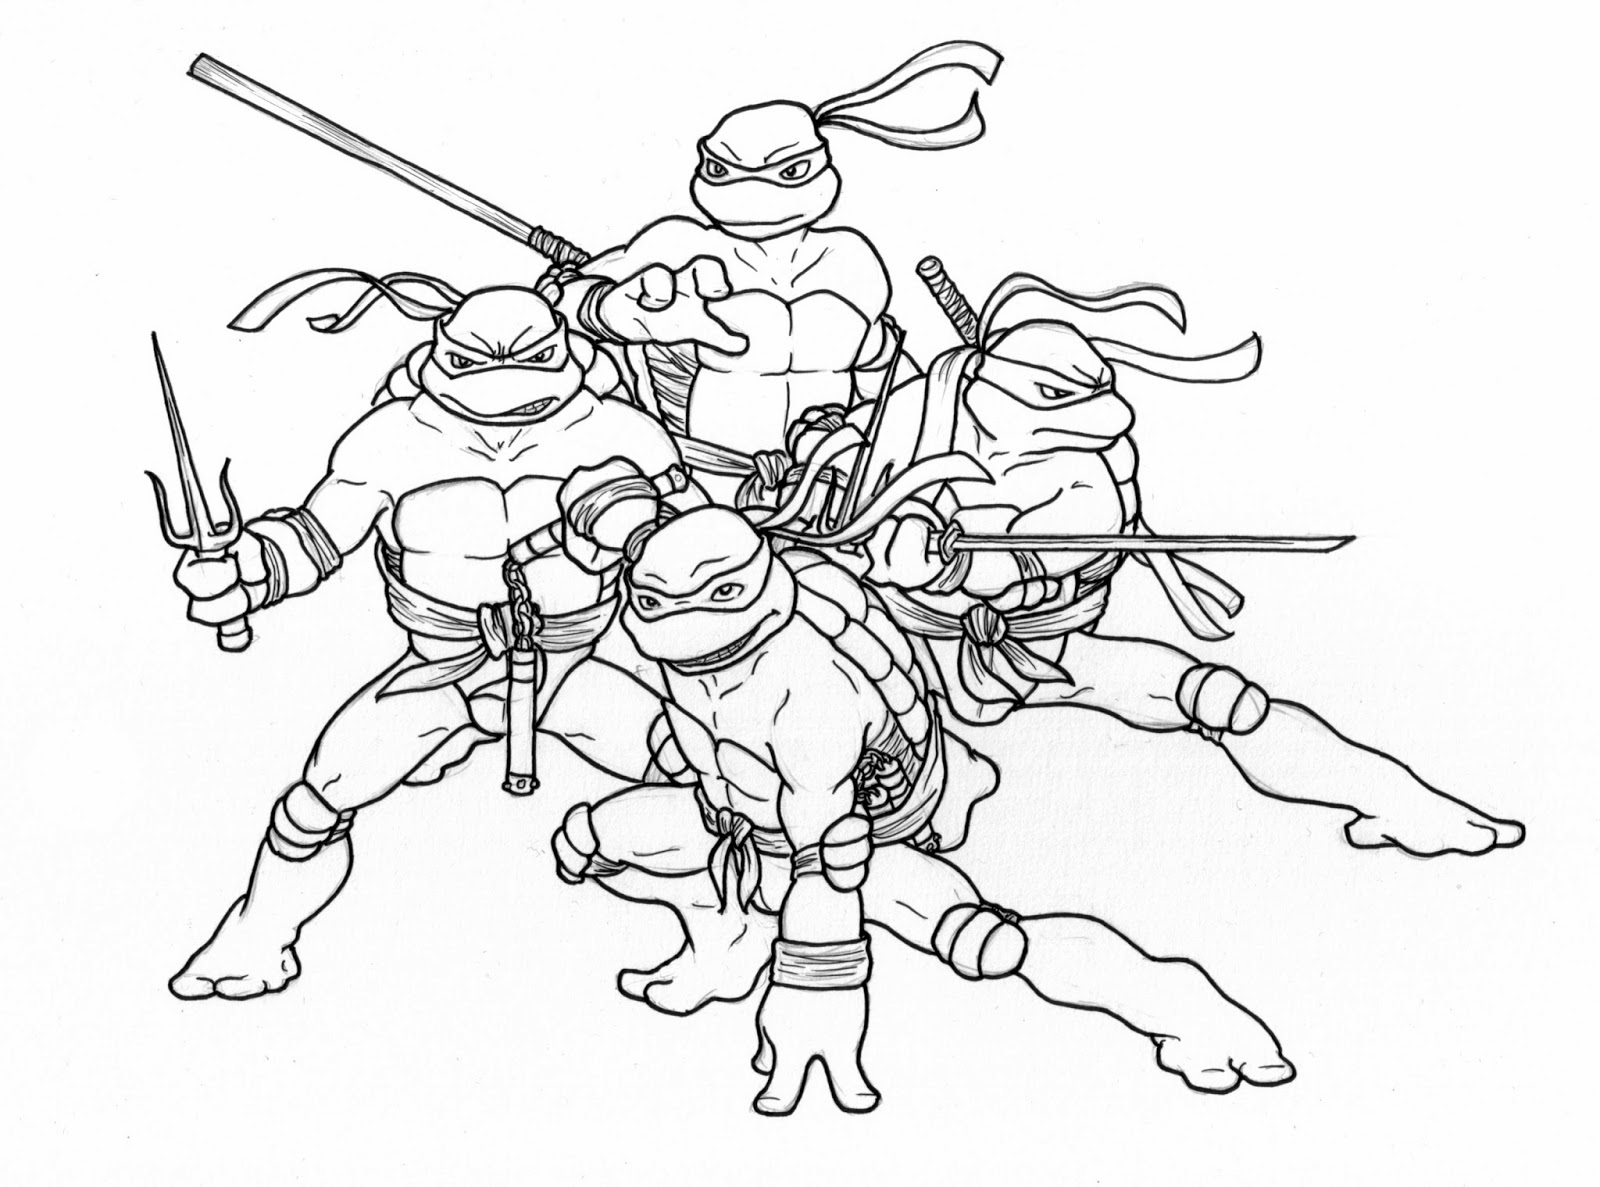 teenage mutant ninja turtles coloring pages | Sara Dunkerton Illustration and Animation: Teenage Mutant ...